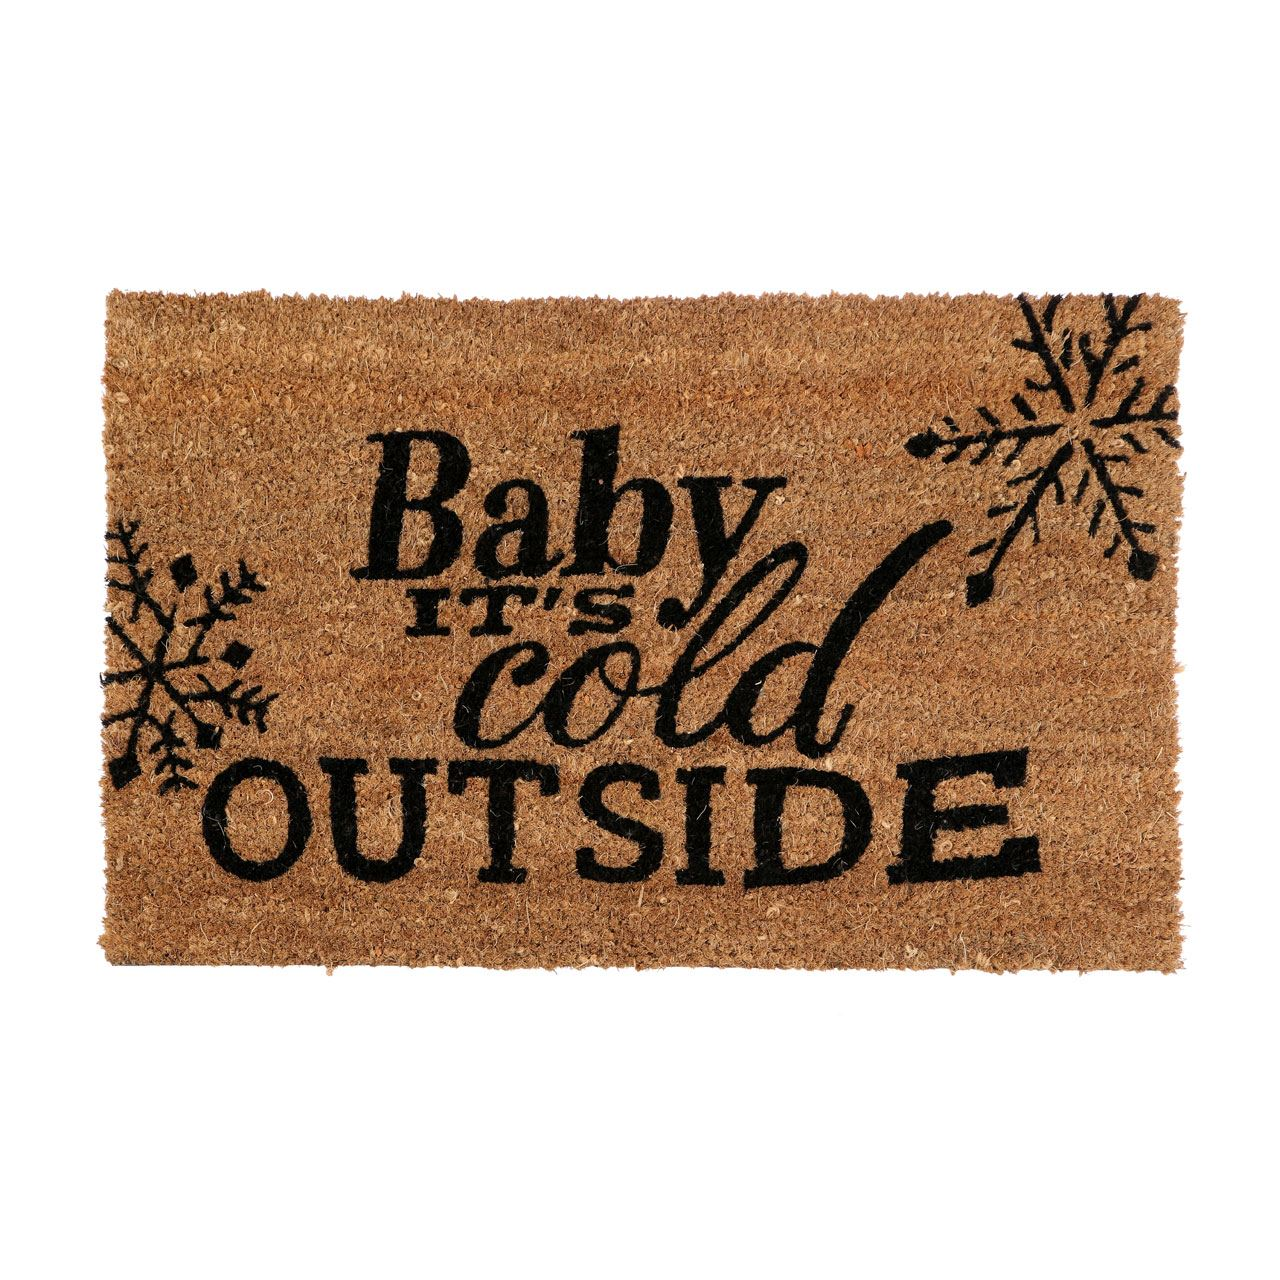 Cold Outside Doormat,Pvc Backed Coir